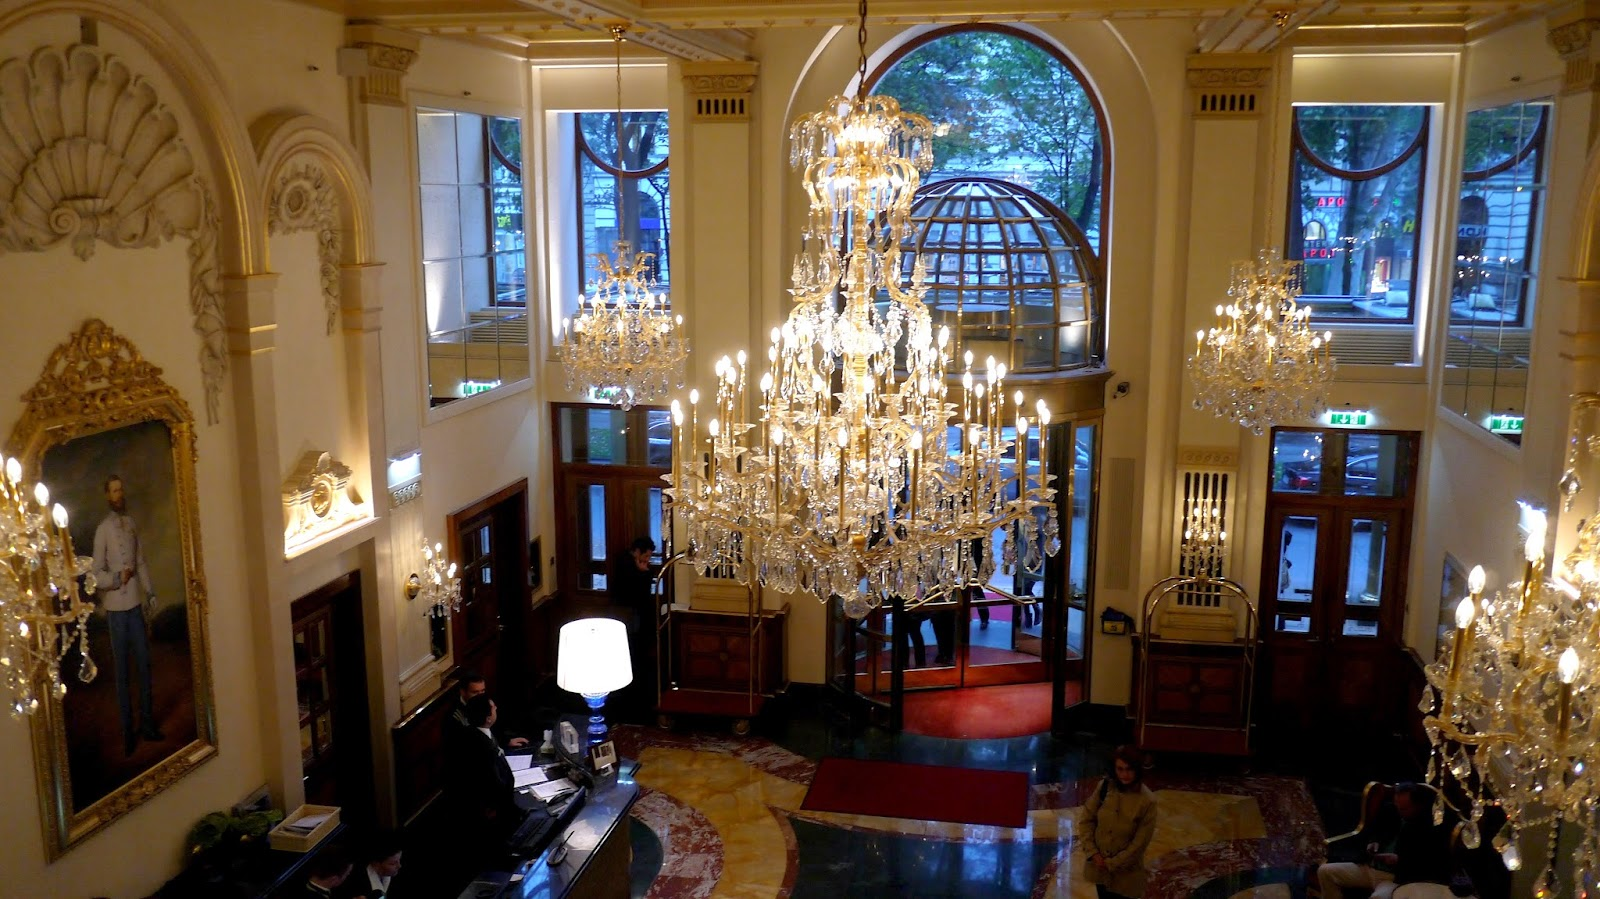 Hotel imperial vienna lux life a luxury lifestyle blog for Best luxury hotels in vienna